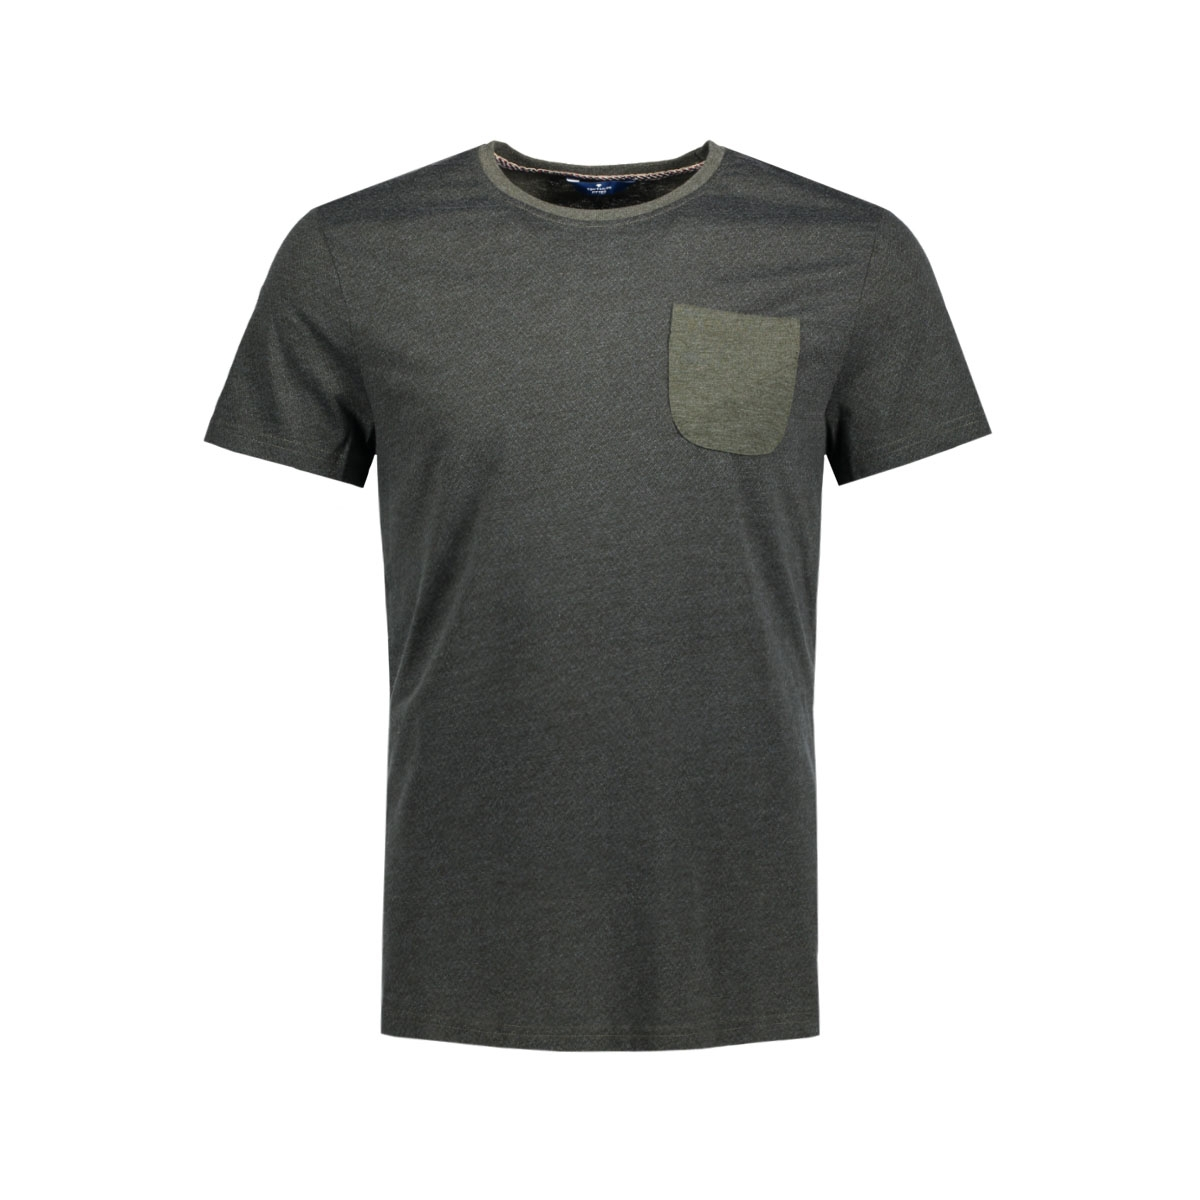 1038810.00.10 tom tailor t-shirt 7813